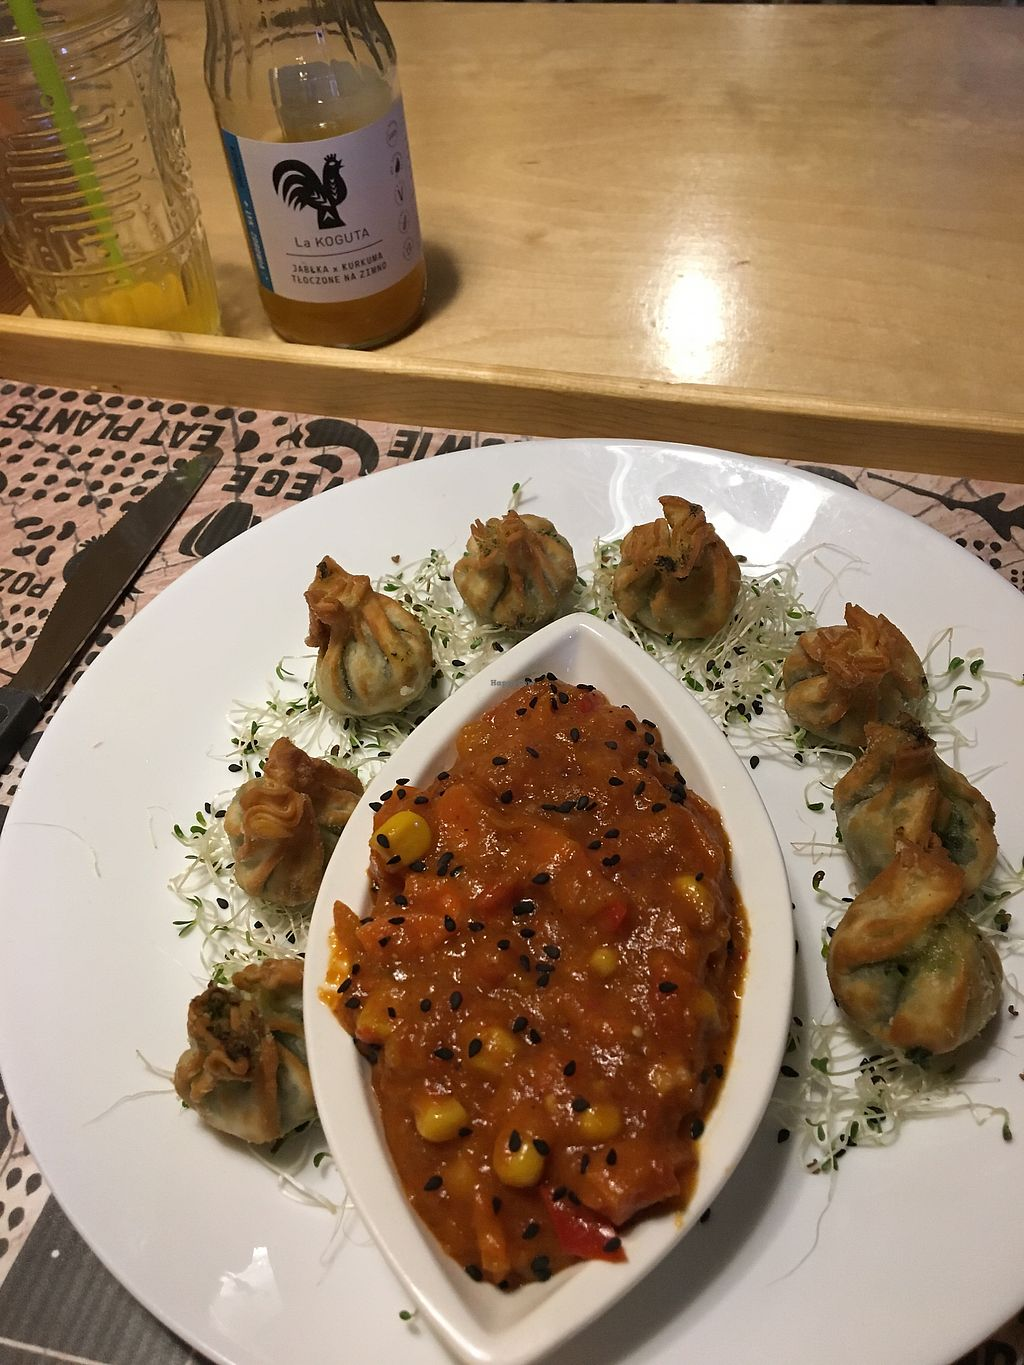 """Photo of Nova Krova  by <a href=""""/members/profile/stridaay"""">stridaay</a> <br/>Spinach Dumplings with Sweet & Sour  <br/> February 7, 2018  - <a href='/contact/abuse/image/45419/356084'>Report</a>"""